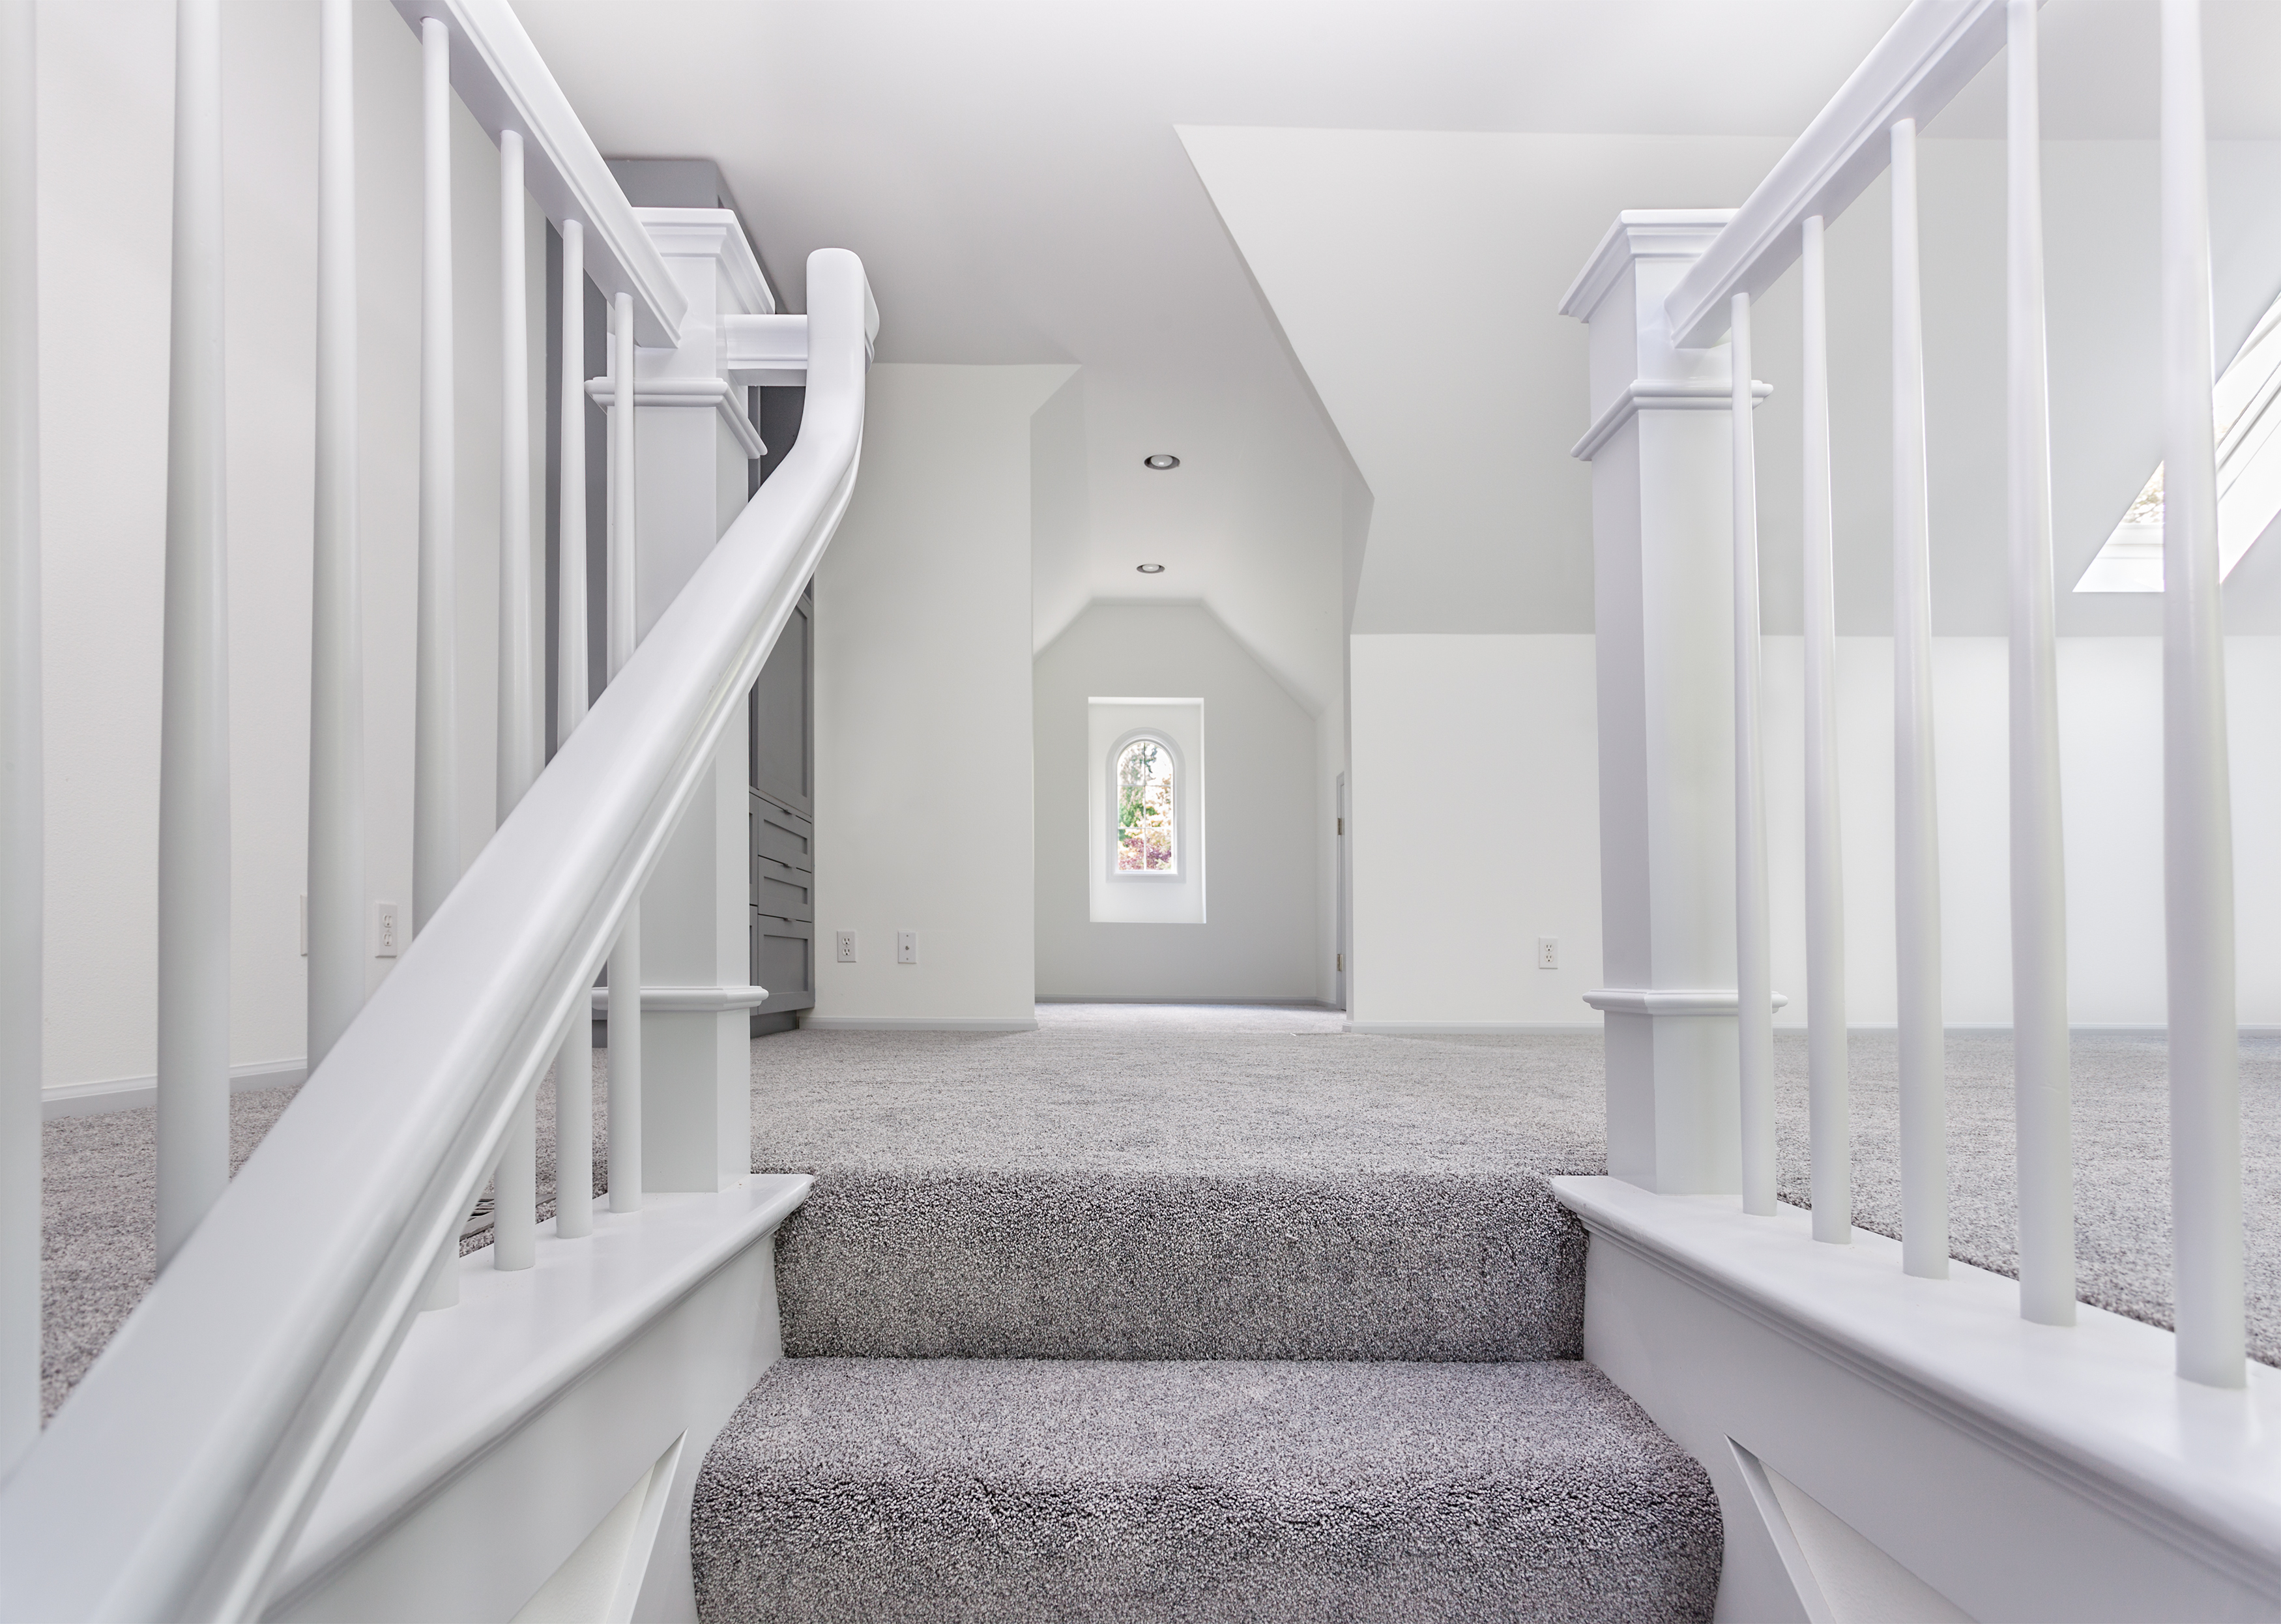 How To Lay Carpet On Stairs And The Landing Builddirectlearning Center